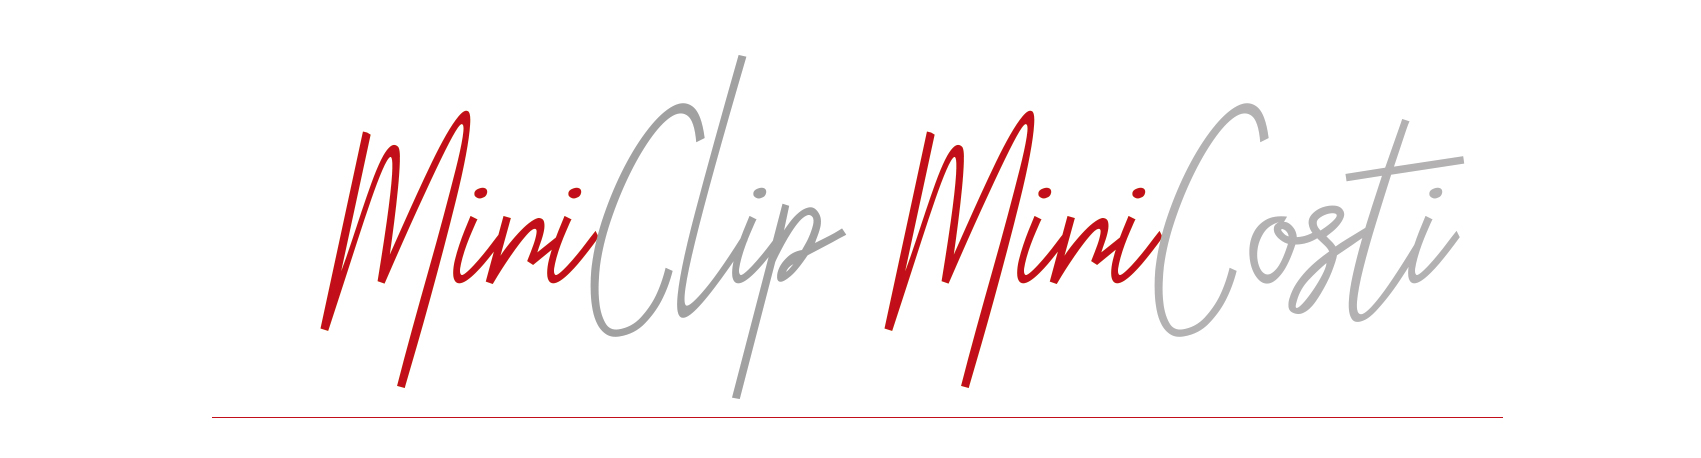 mini clip mini costi